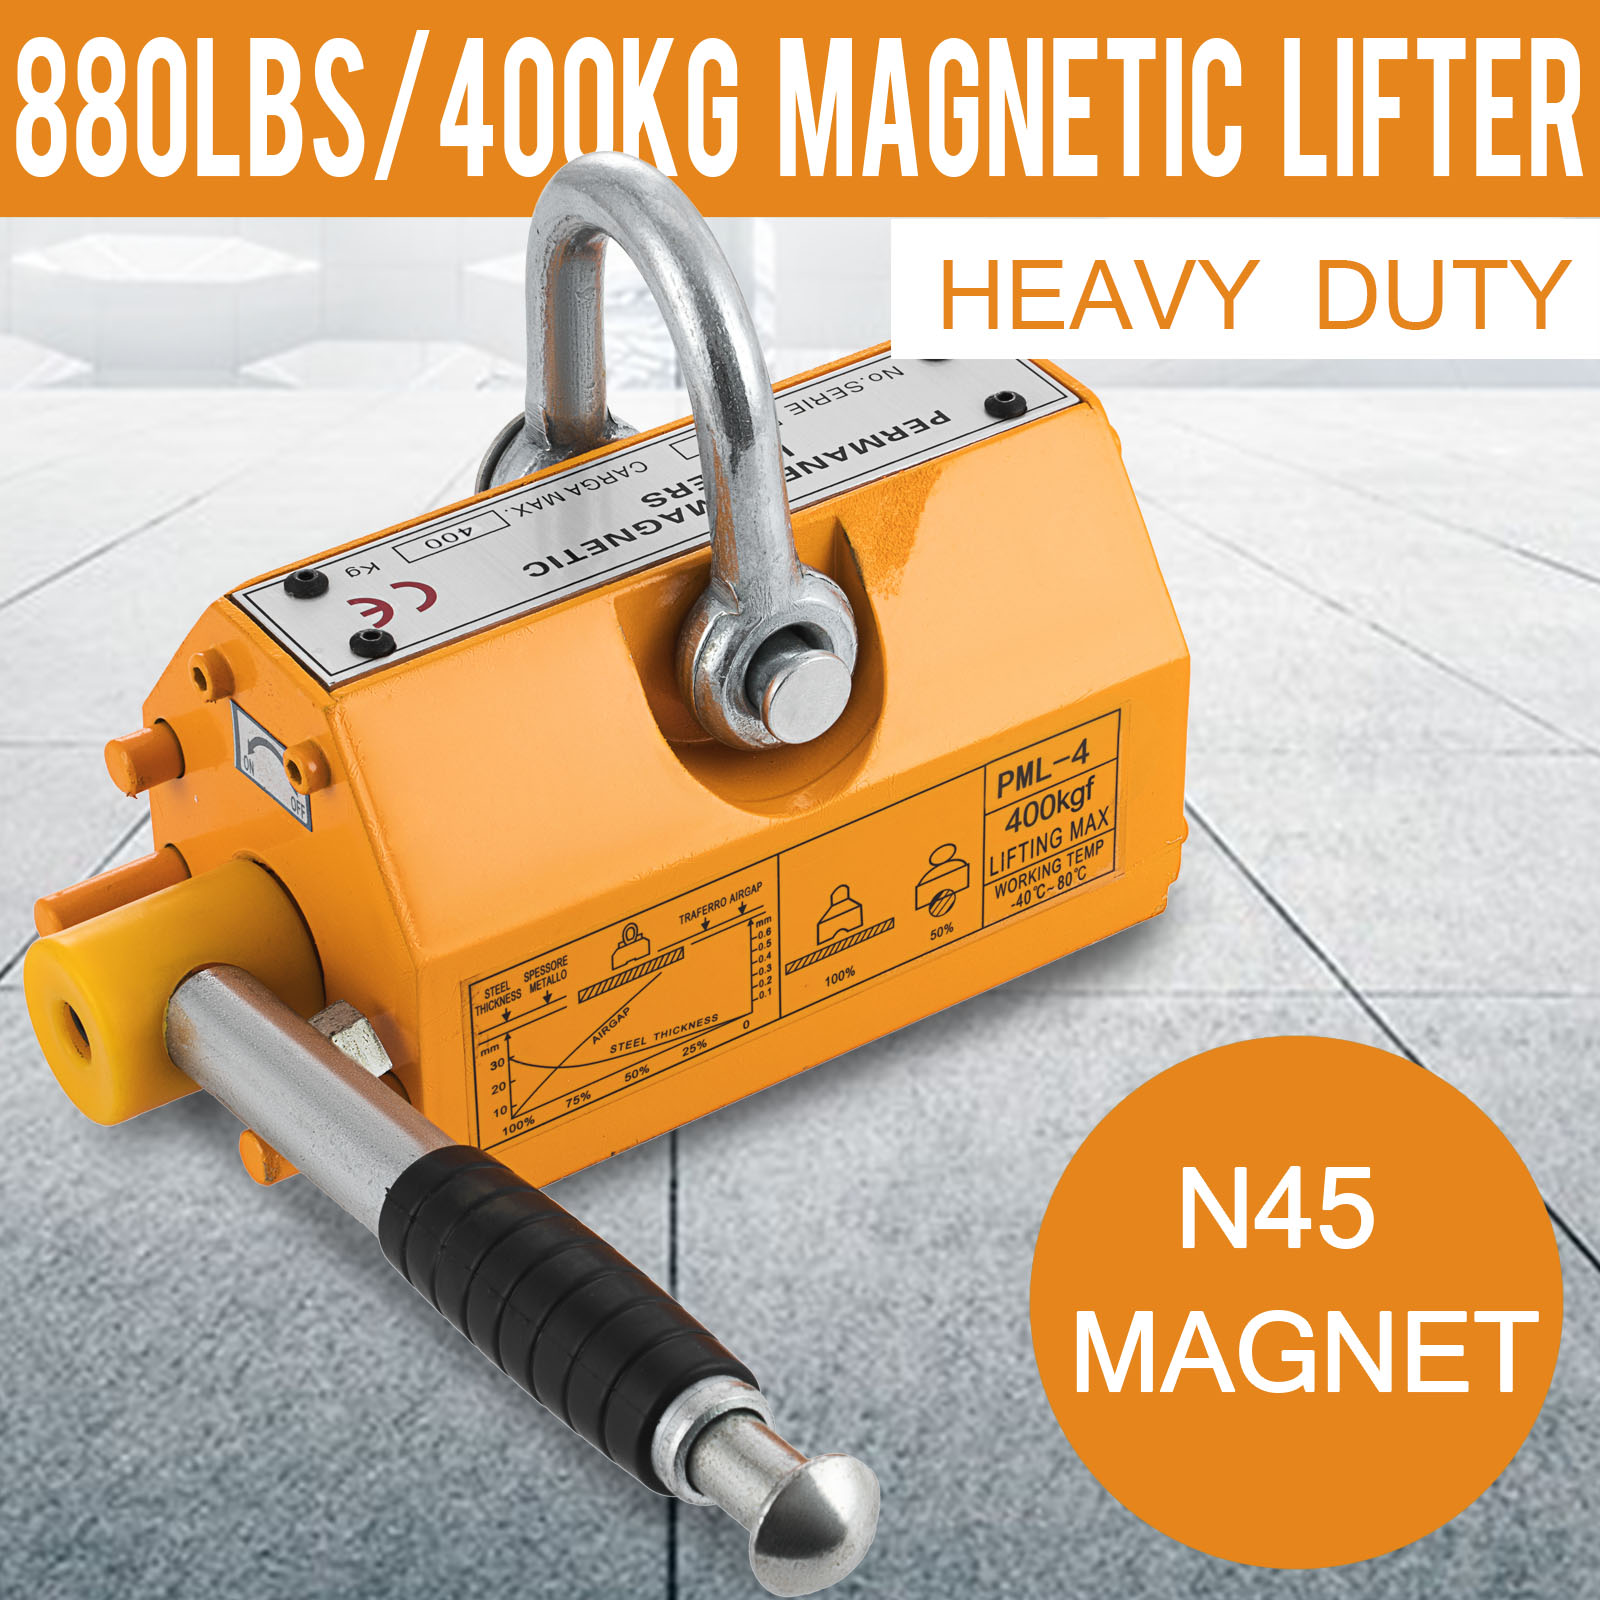 Details about 400 KG Steel Magnetic Lifter Heavy Duty Crane Hoist Lifting on